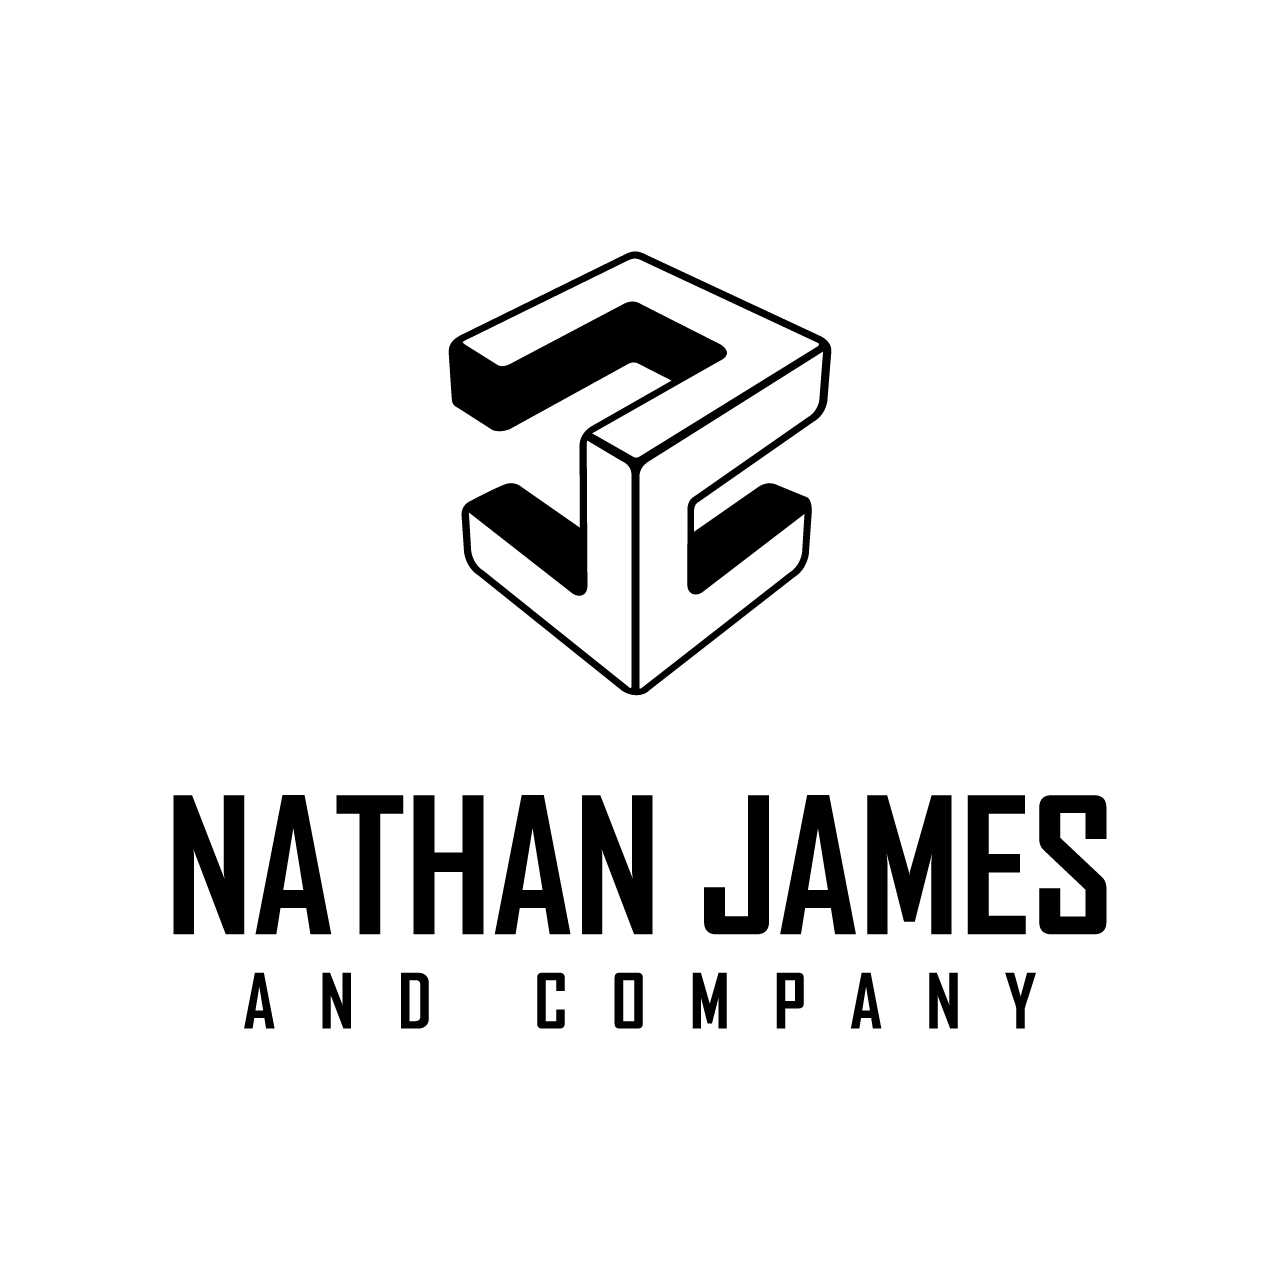 Black and white light logo variant for Nathan James and Company